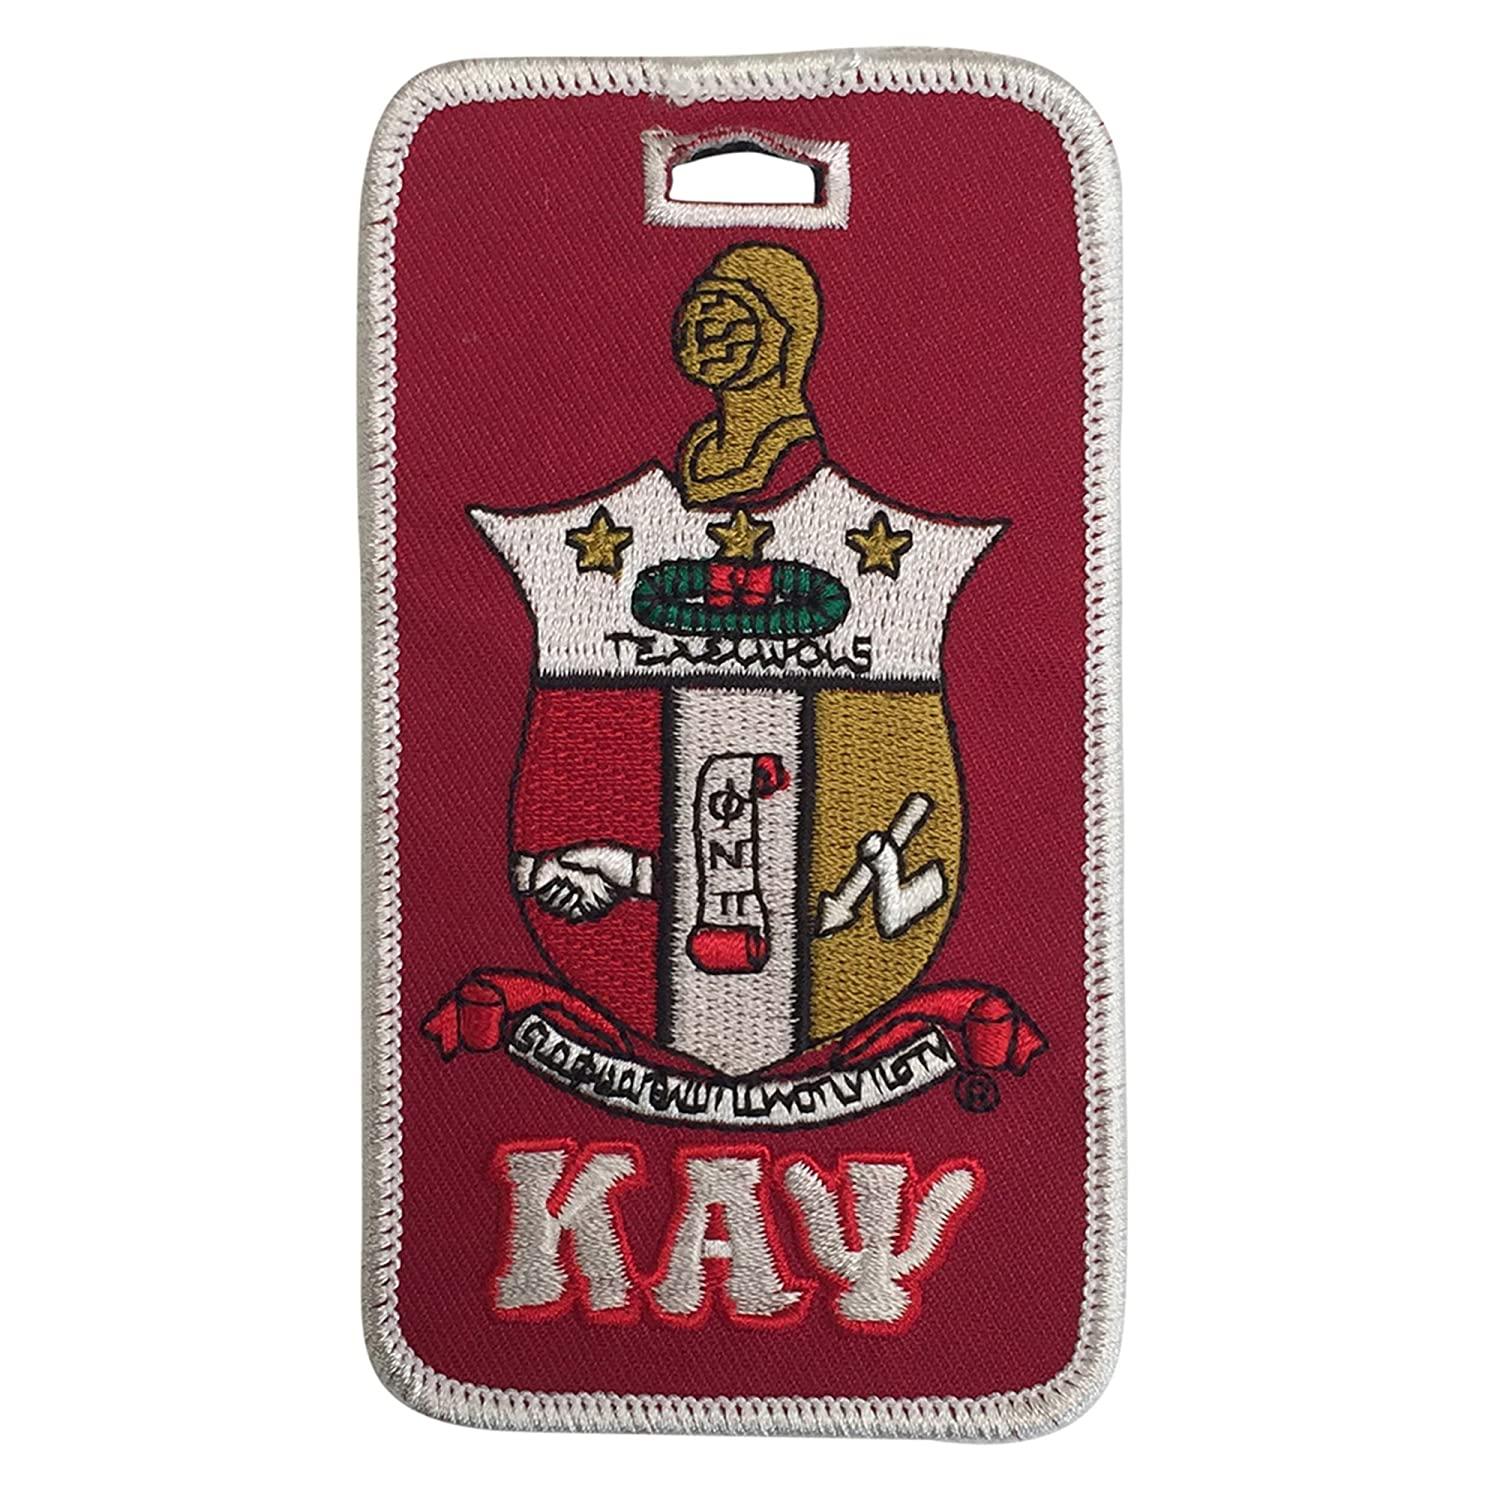 a55f75984557 Kappa alpha psi shield crest embroidered luggage tag everything else jpg  1500x1500 Alpha kappa luggage tags